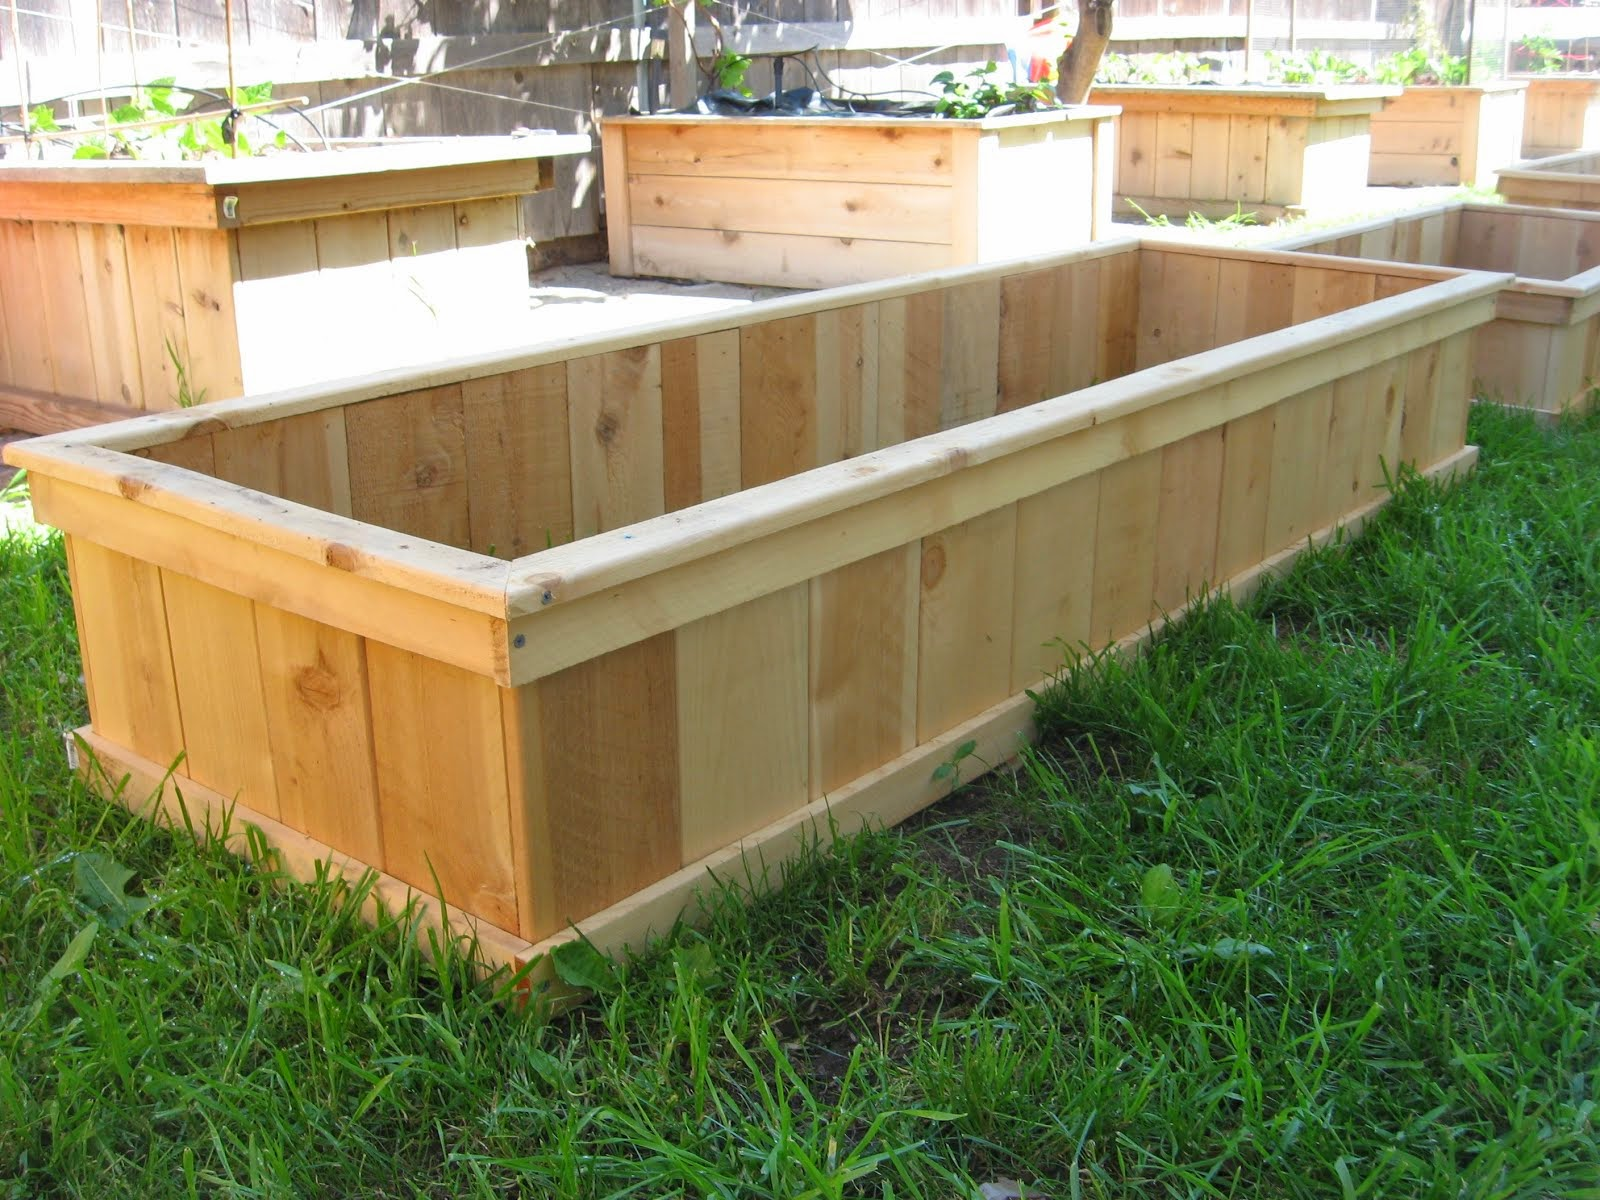 shippable raised garden kits